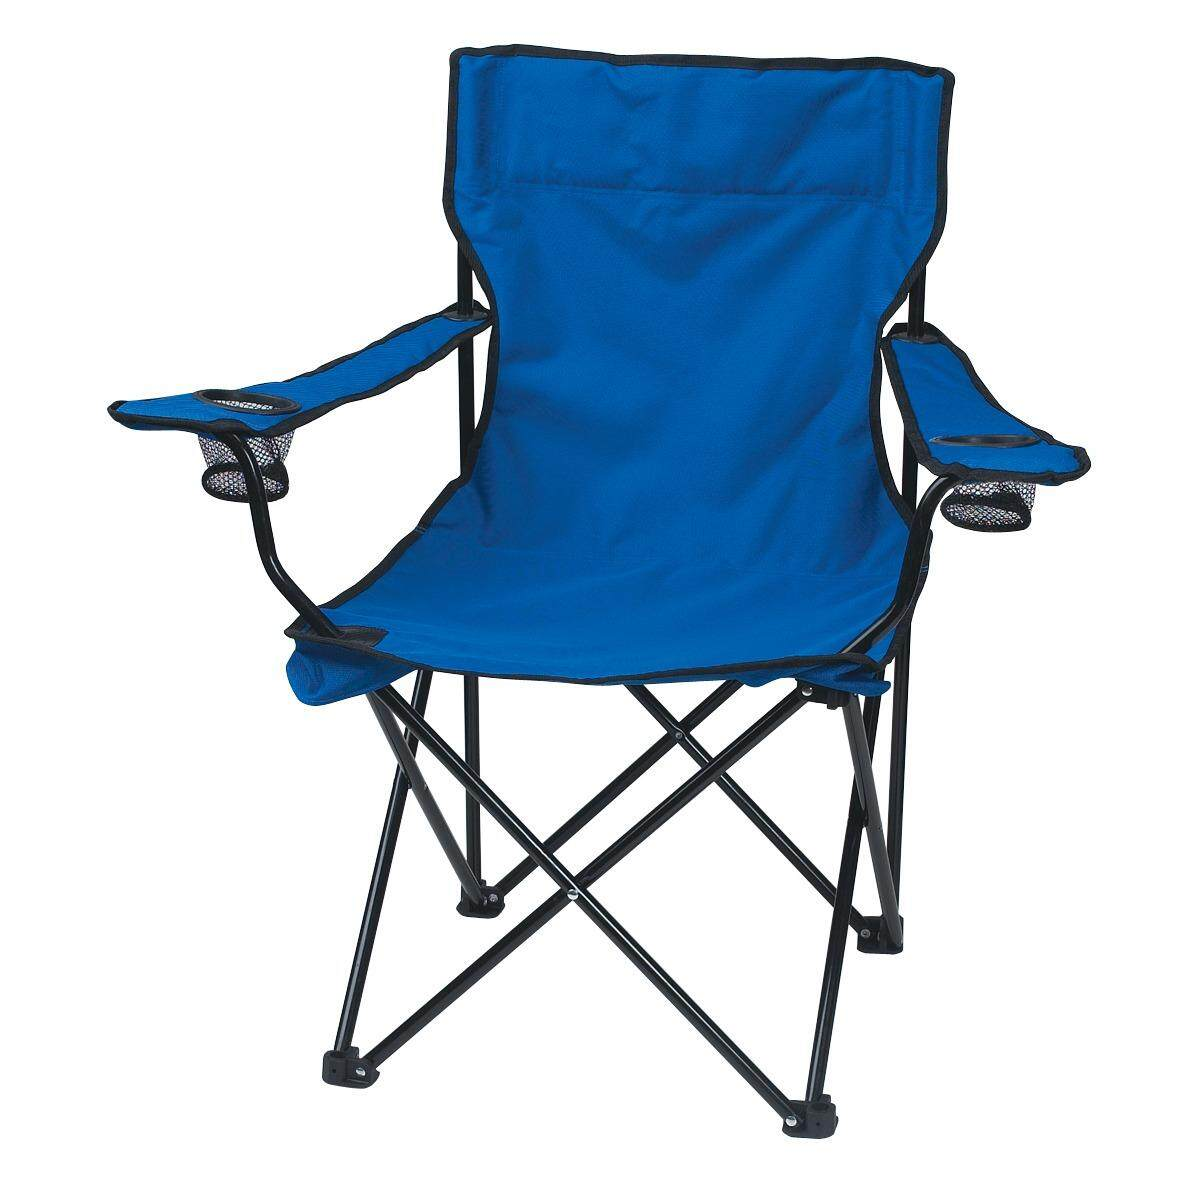 Picnic Chairs Ecosport Portable Folding Picnic Outdoor Camping Chairs